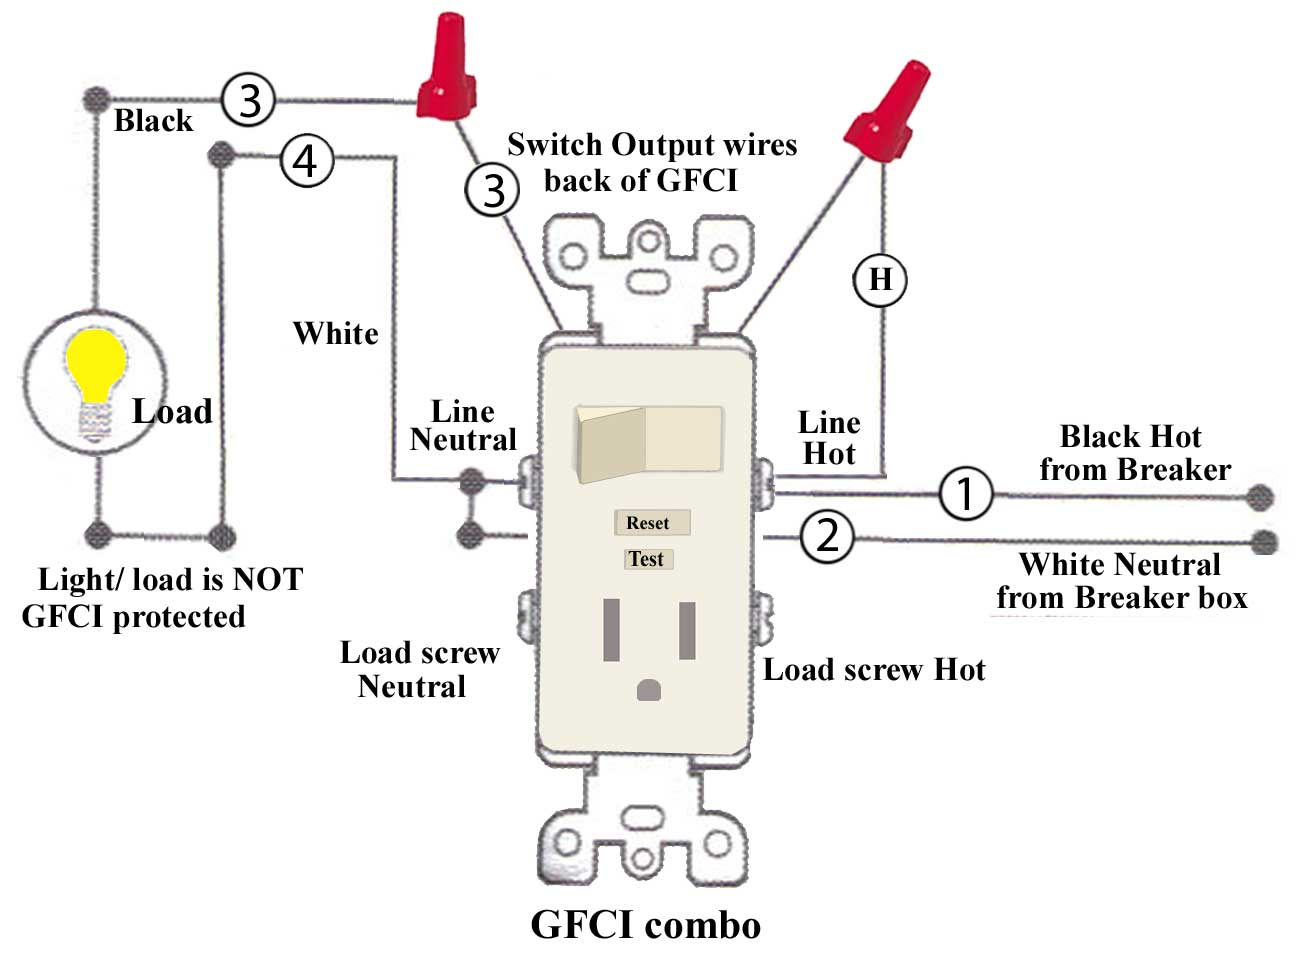 GFCI combo wiring 4 how to install and troubleshoot gfci GFCI Breaker Wiring Diagram at fashall.co